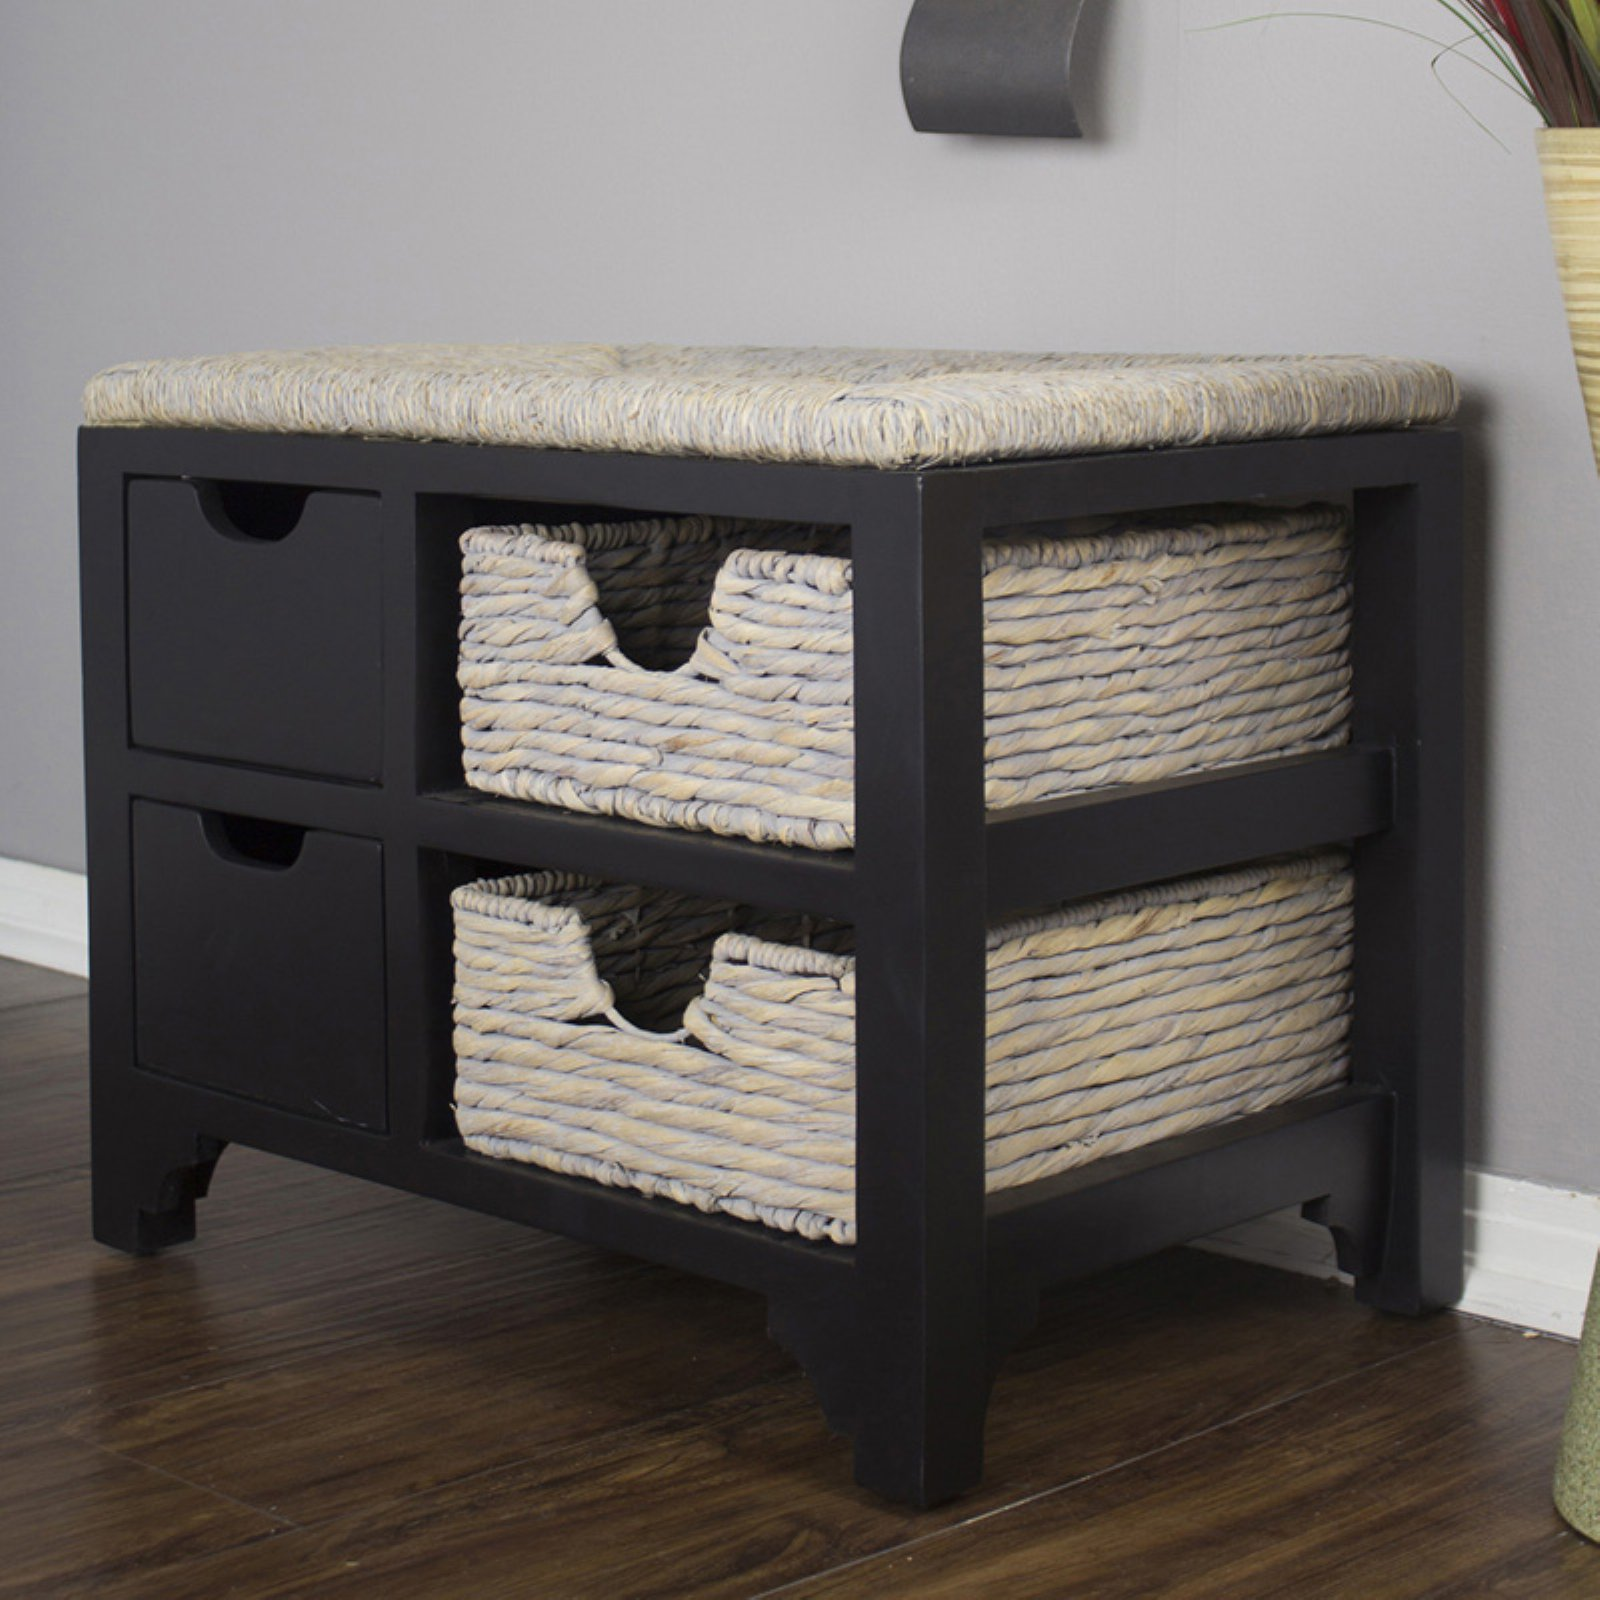 Heather Ann Creations Vale Seagrass Top 2 Drawer 2 Basket Storage Bench